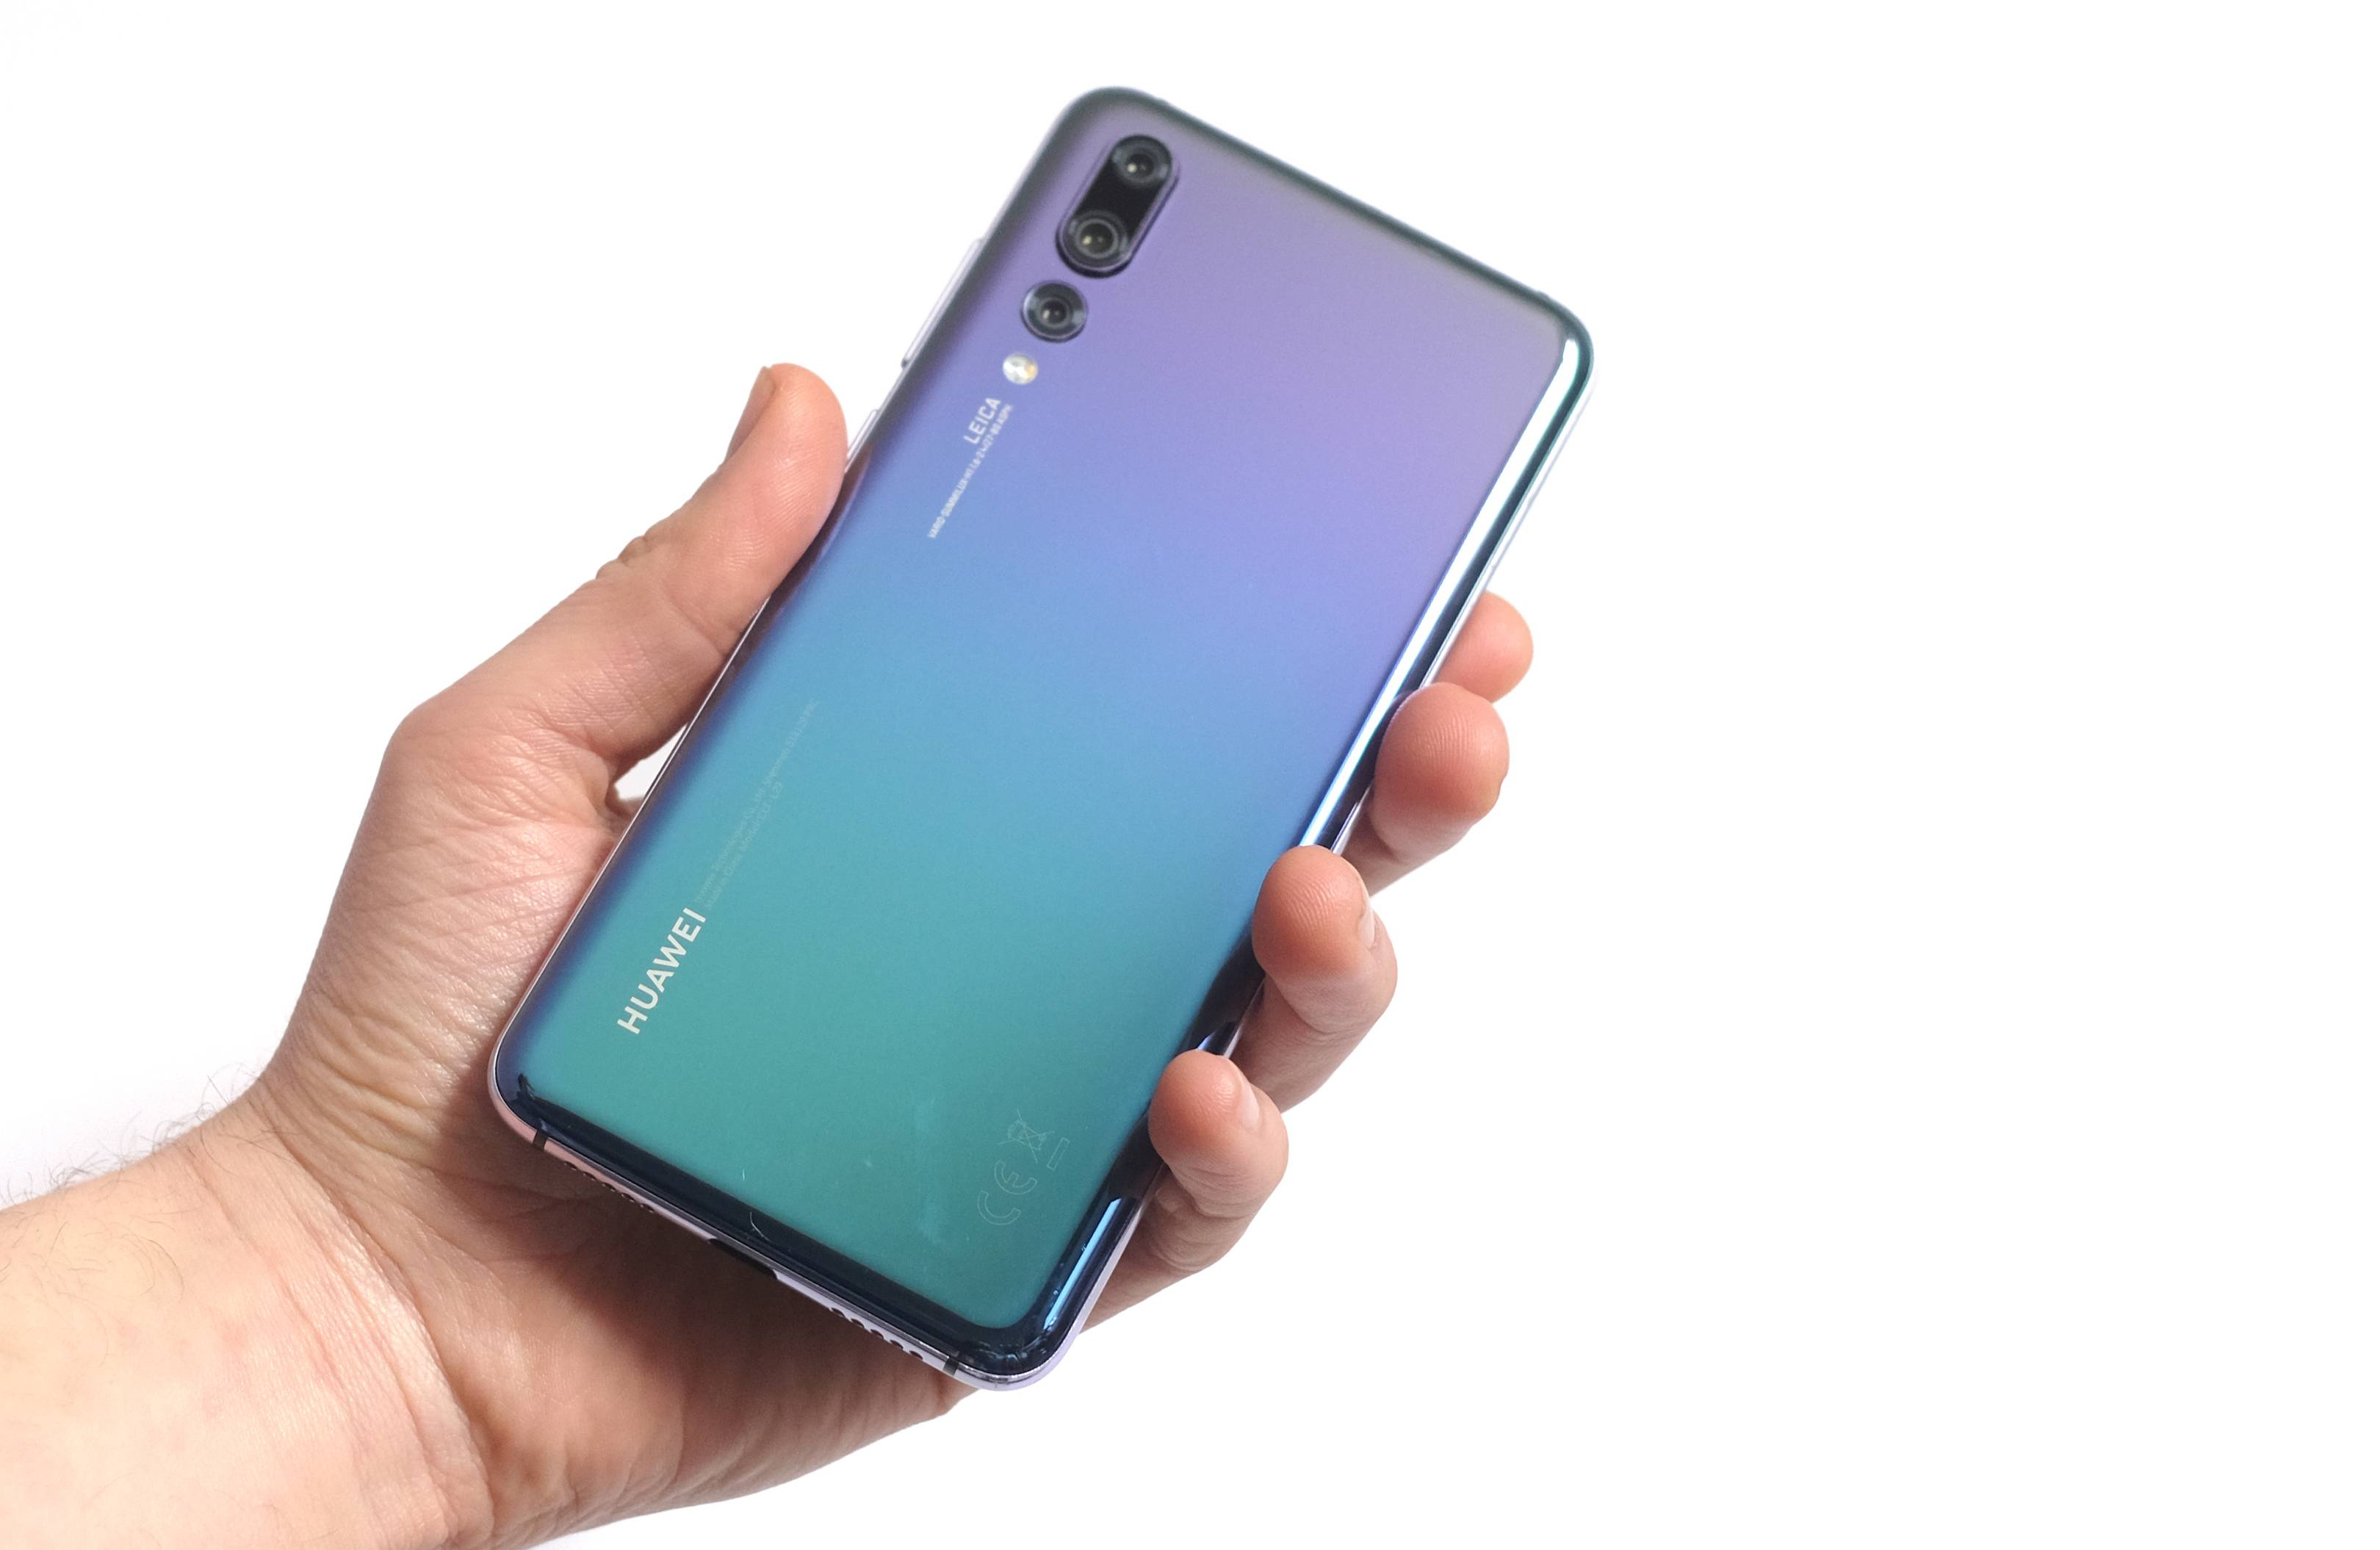 Huawei P20 Pro review: not much thrill, but a quality camera | WIRED UK